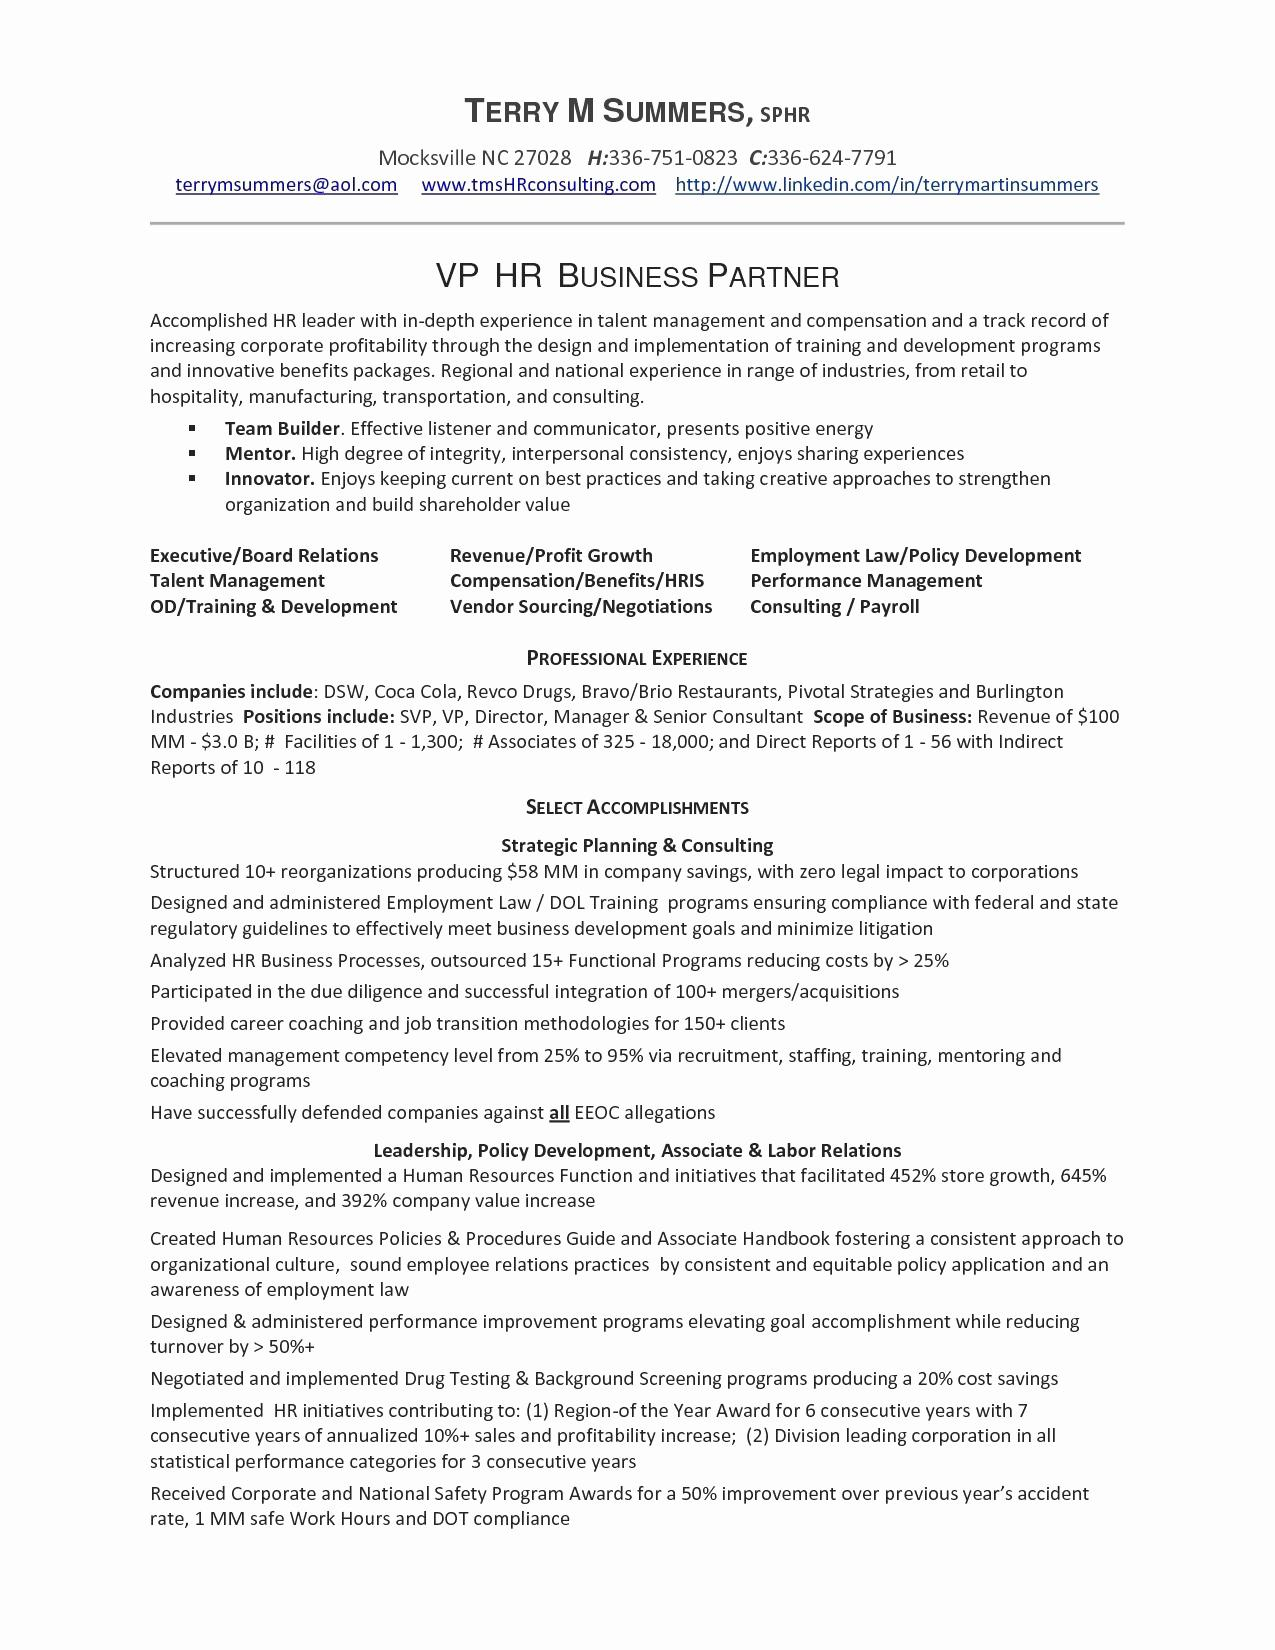 Cleaning Service Resume - Sample Functional Resume Unique Resume Samples for Cleaning Job Best